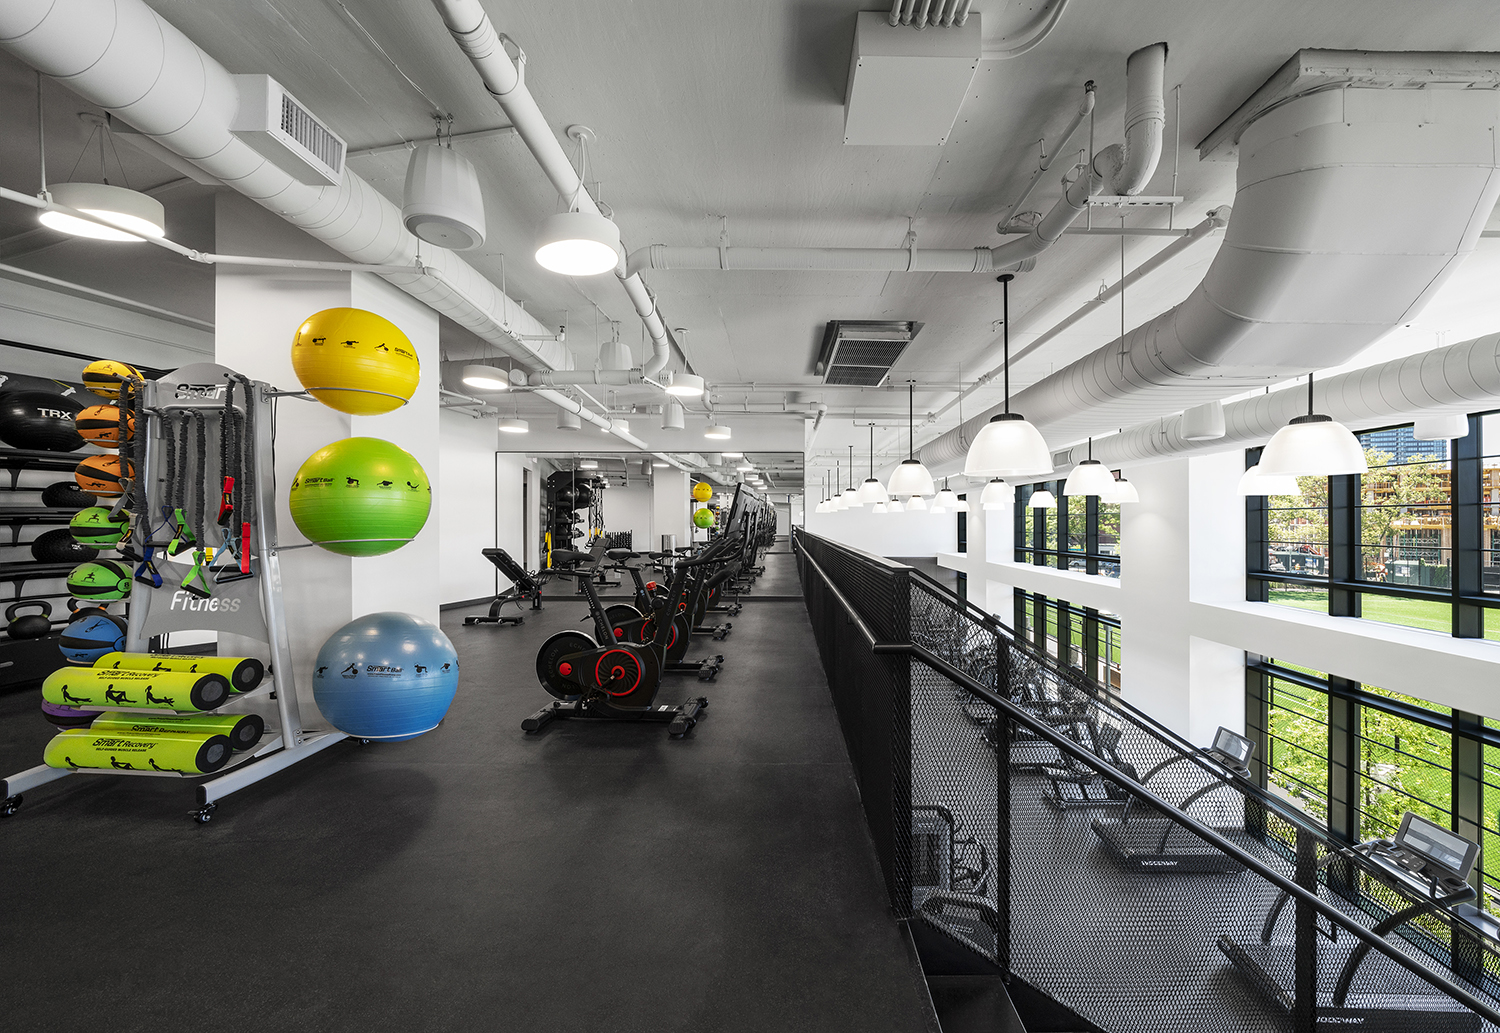 Two story gym in an apartment building